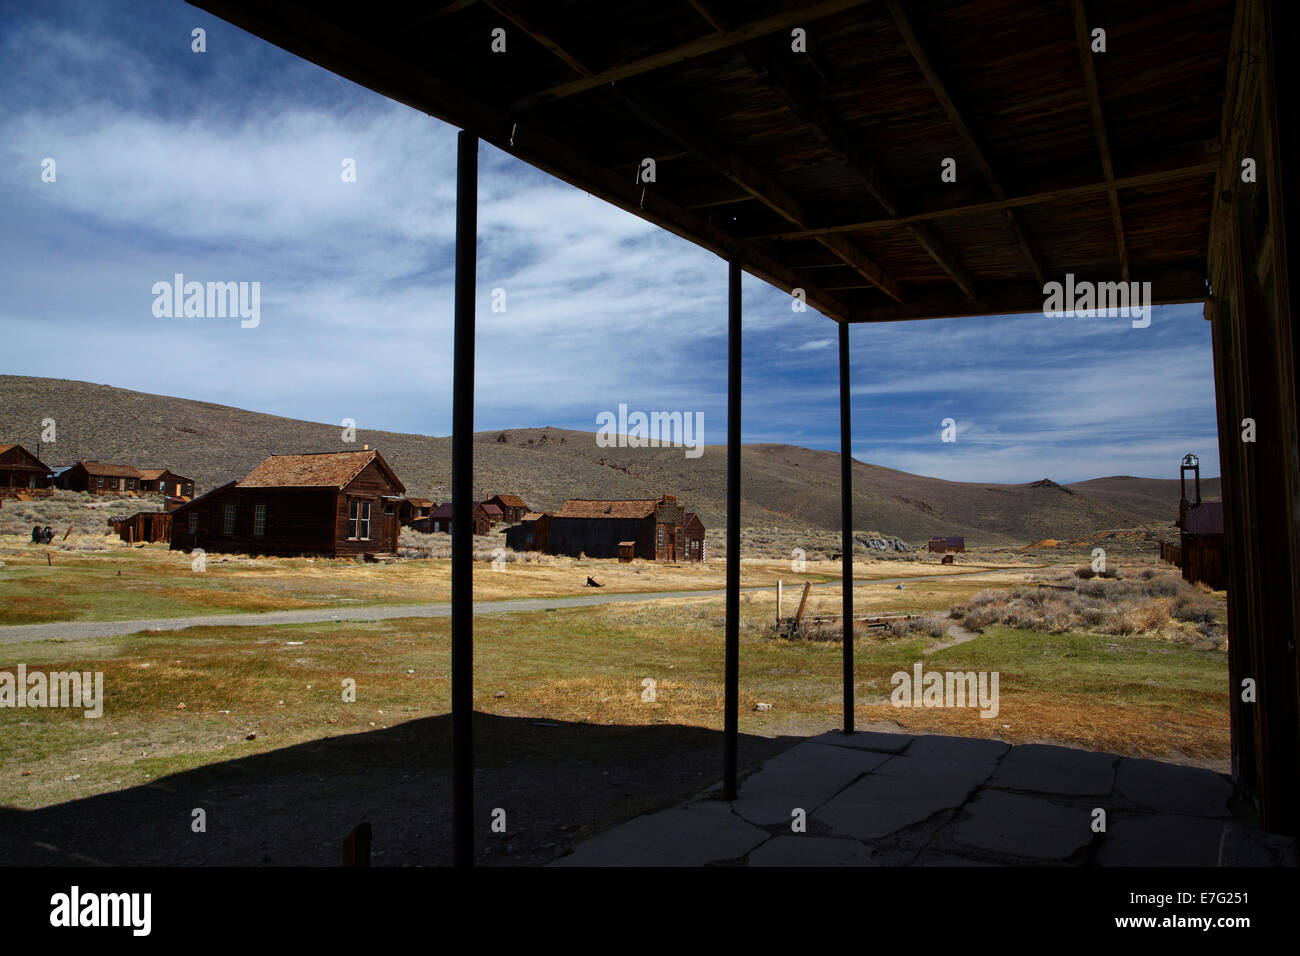 Old buildings seen from under the verandah of the Wheaten and Hollis Hotel, Bodie Ghost Town, Eastern Sierra, California, Stock Photo